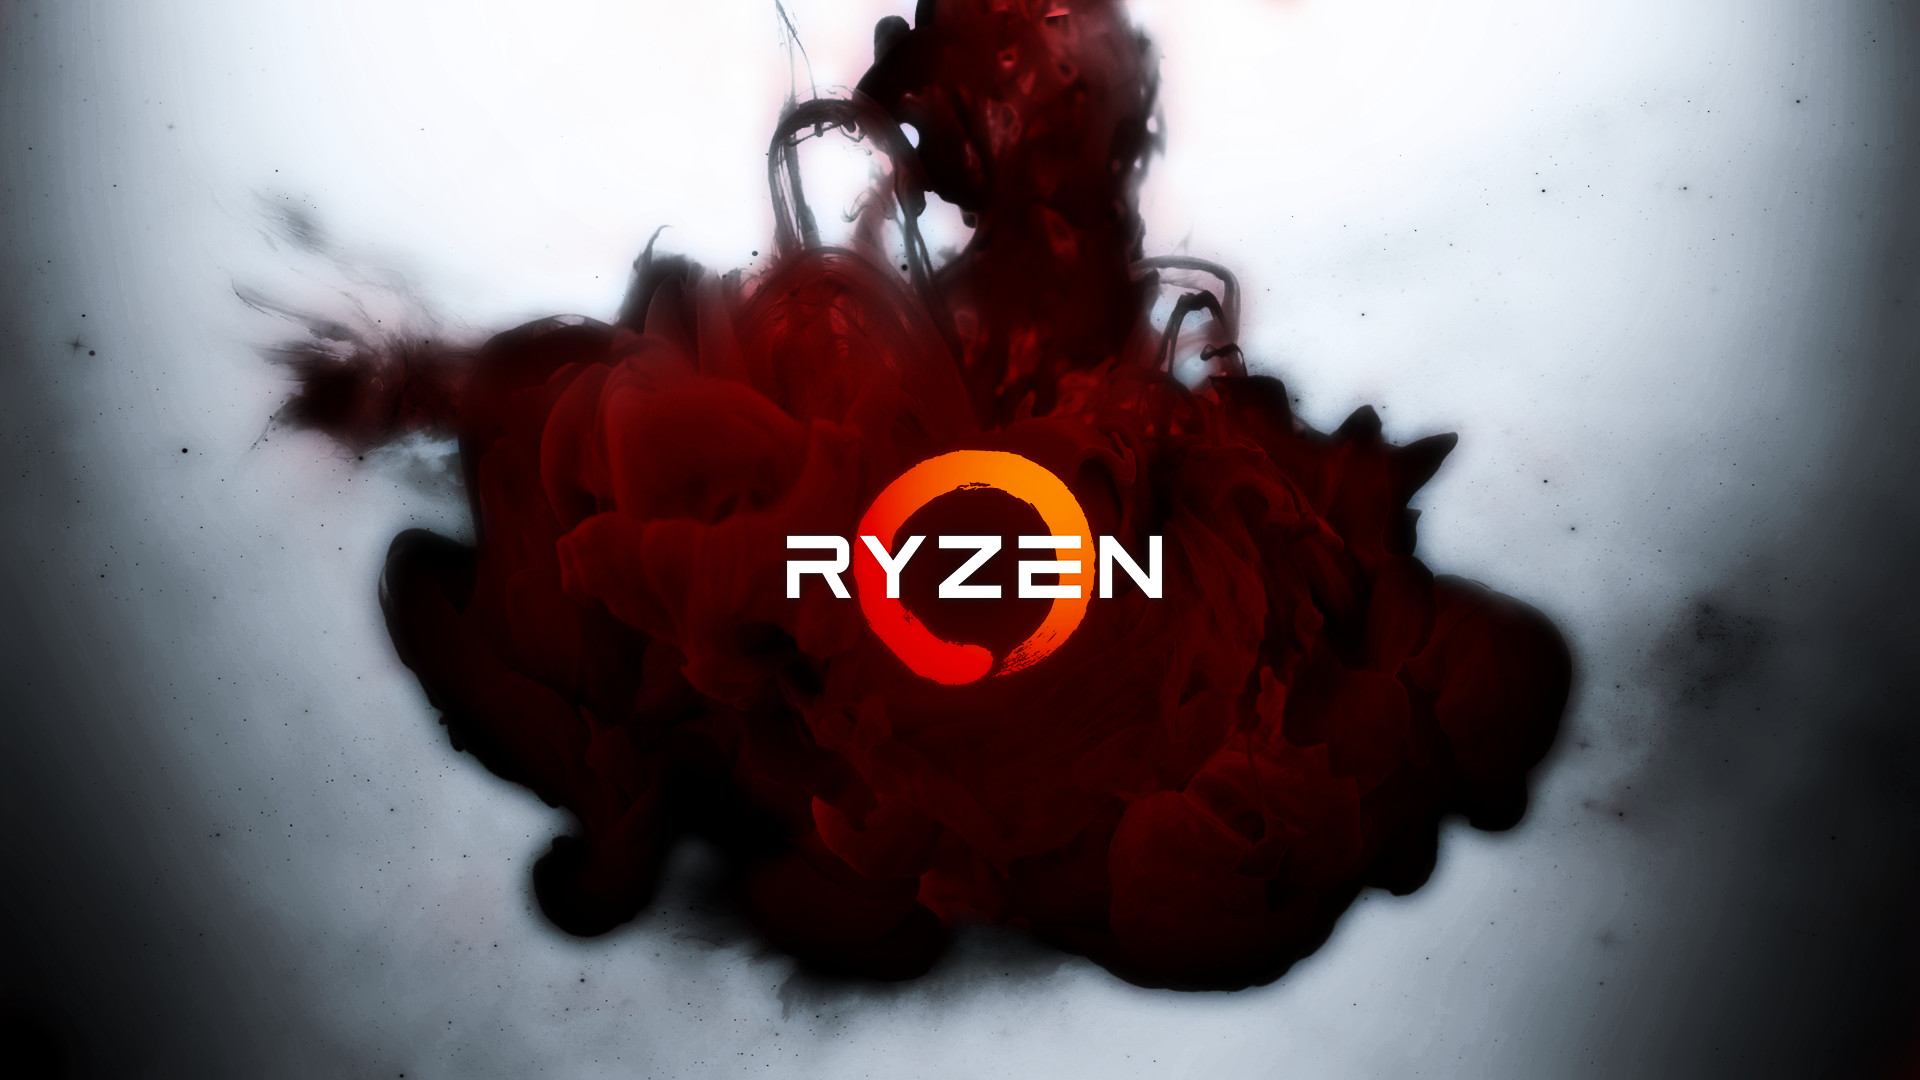 Amd Wallpaper 1920x1080 86 Images